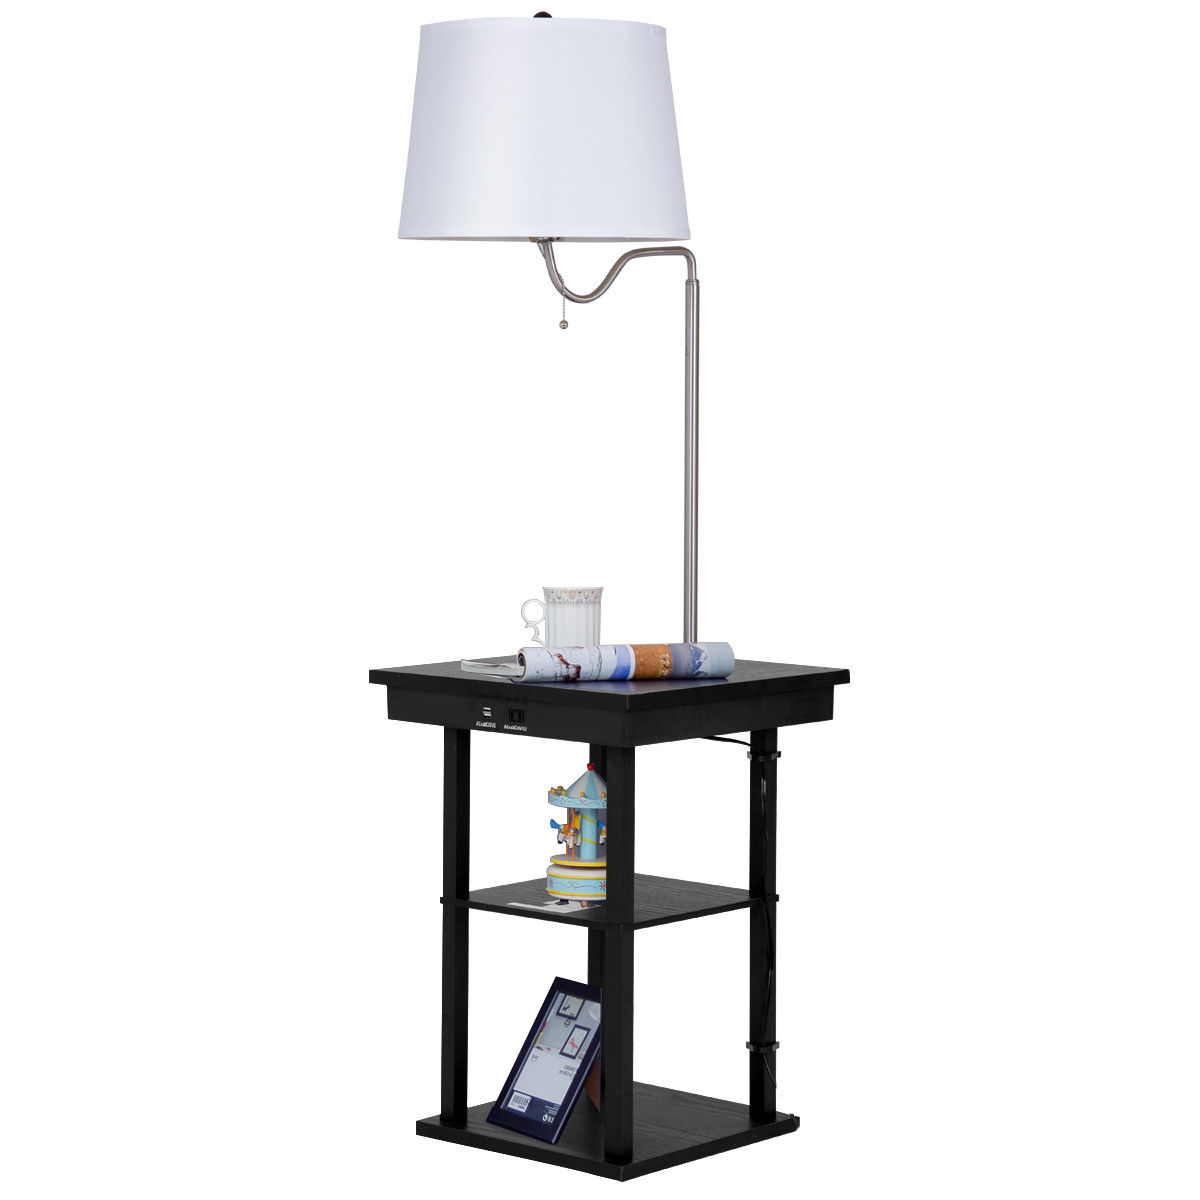 End Table With Lamp Built In Gymax Floor Lamp Swing Arm Lamp Built In End Table W Shade 2 Usb Ports Living Room